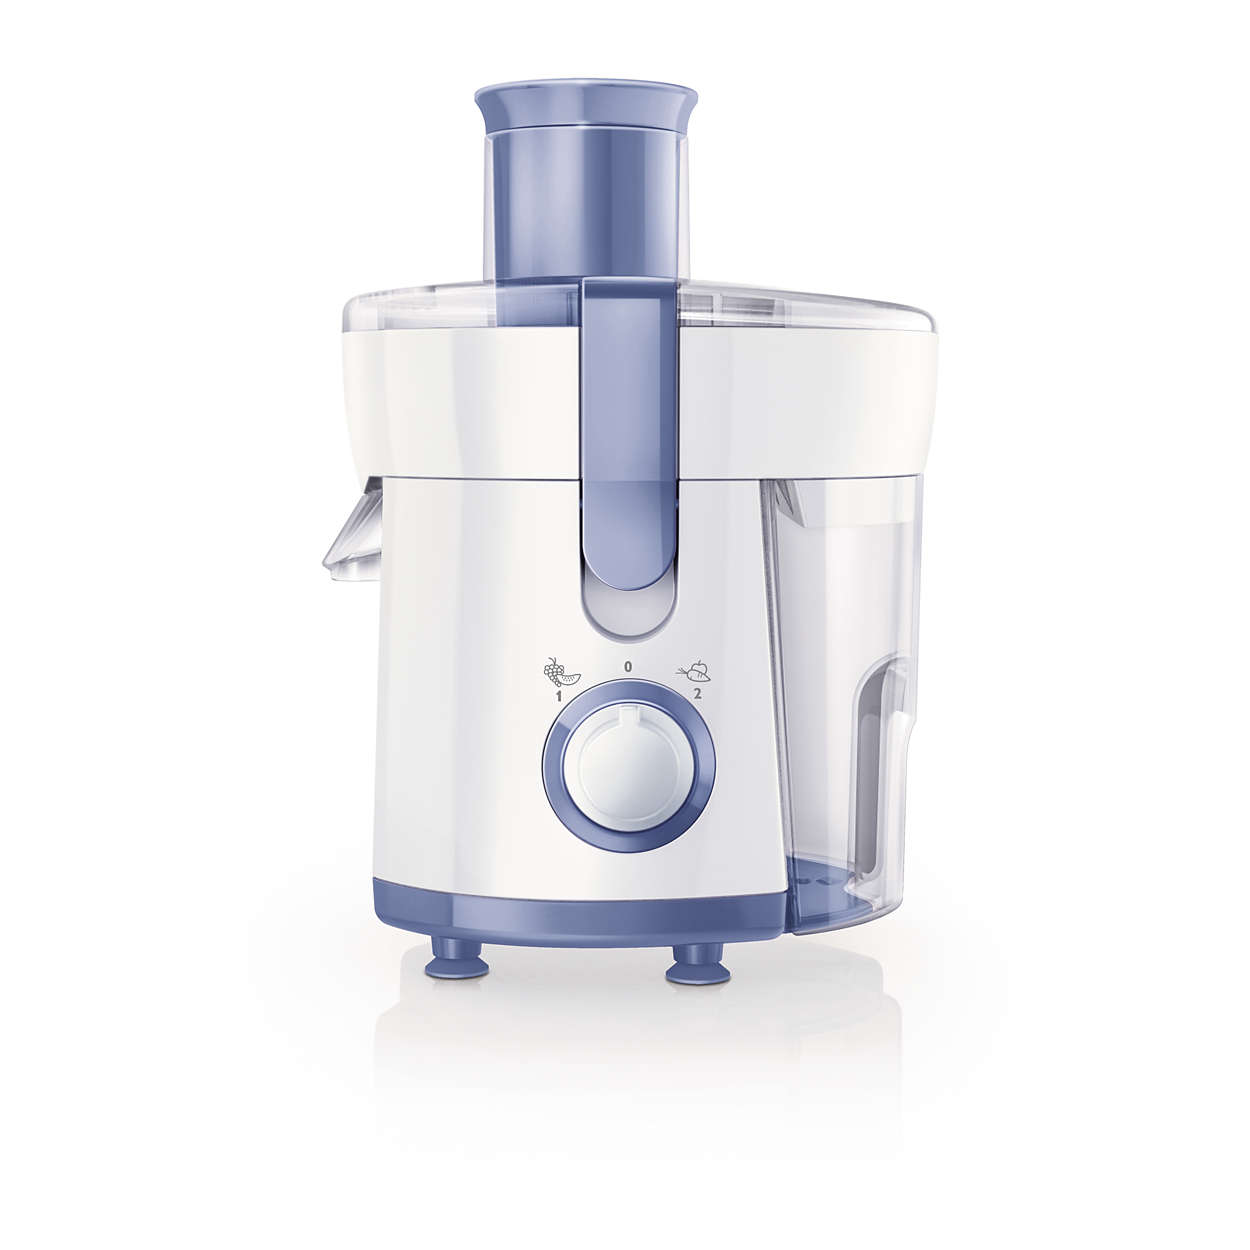 Slow Juicer Philips Review : Daily Collection Juicer HR1811/71 Philips